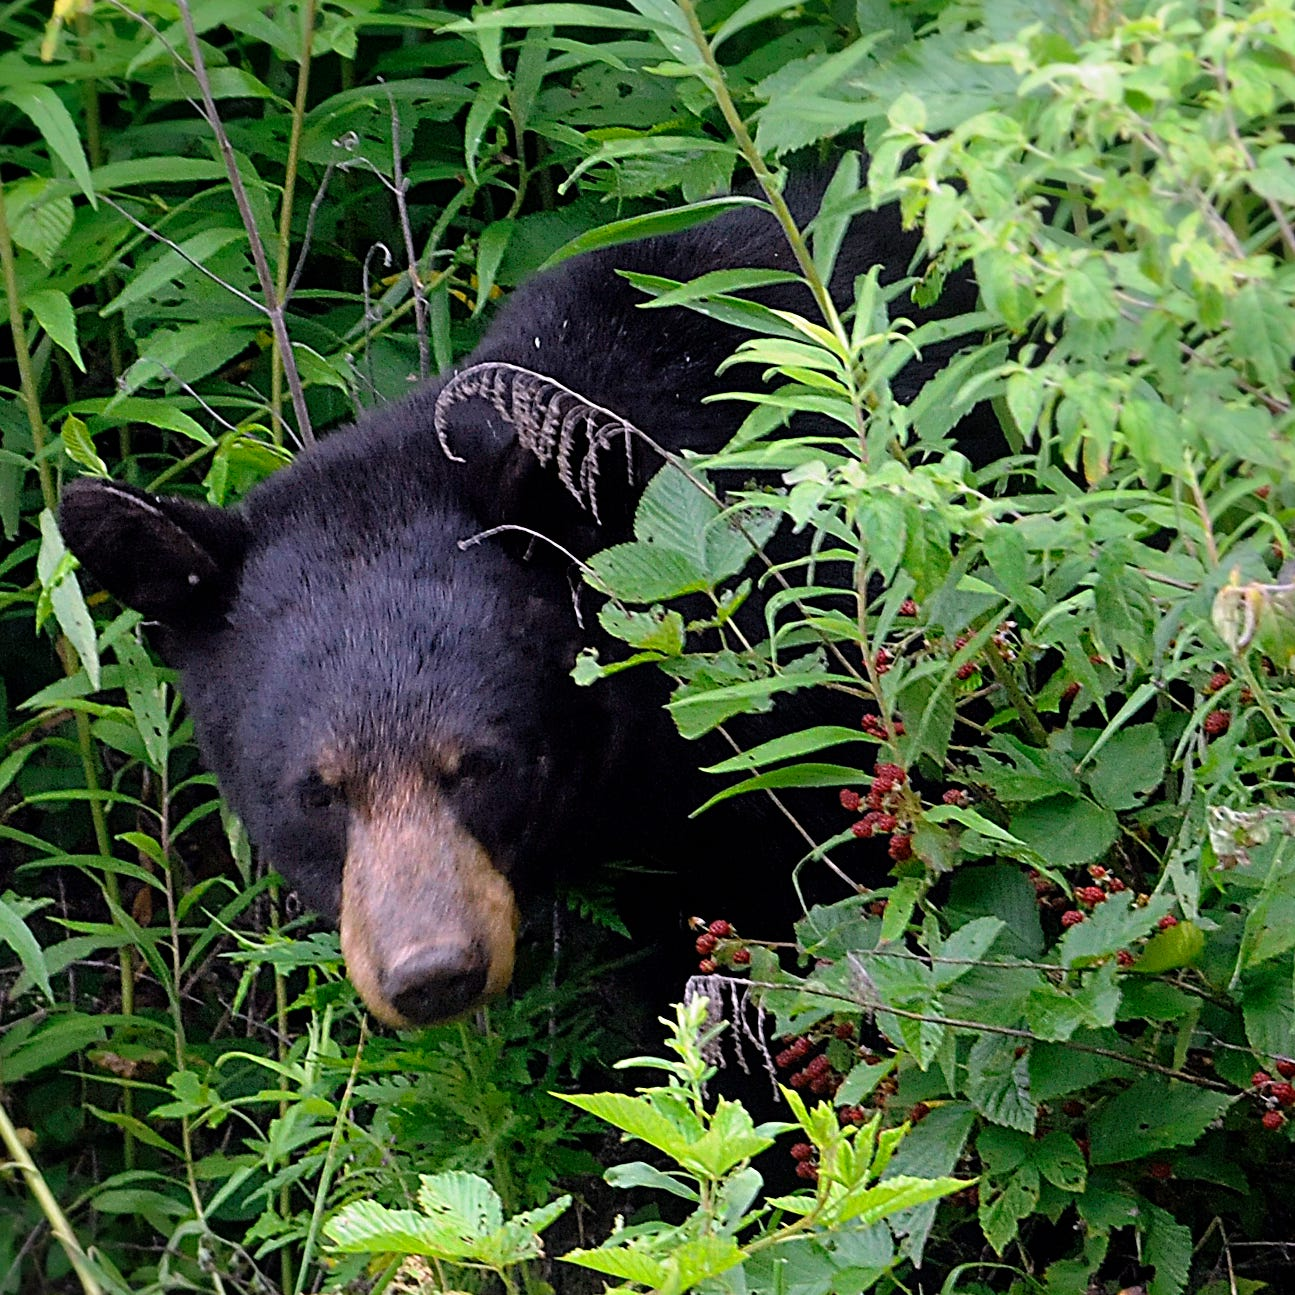 Black bear spotted near Cherryvale Avenue in Little Chute